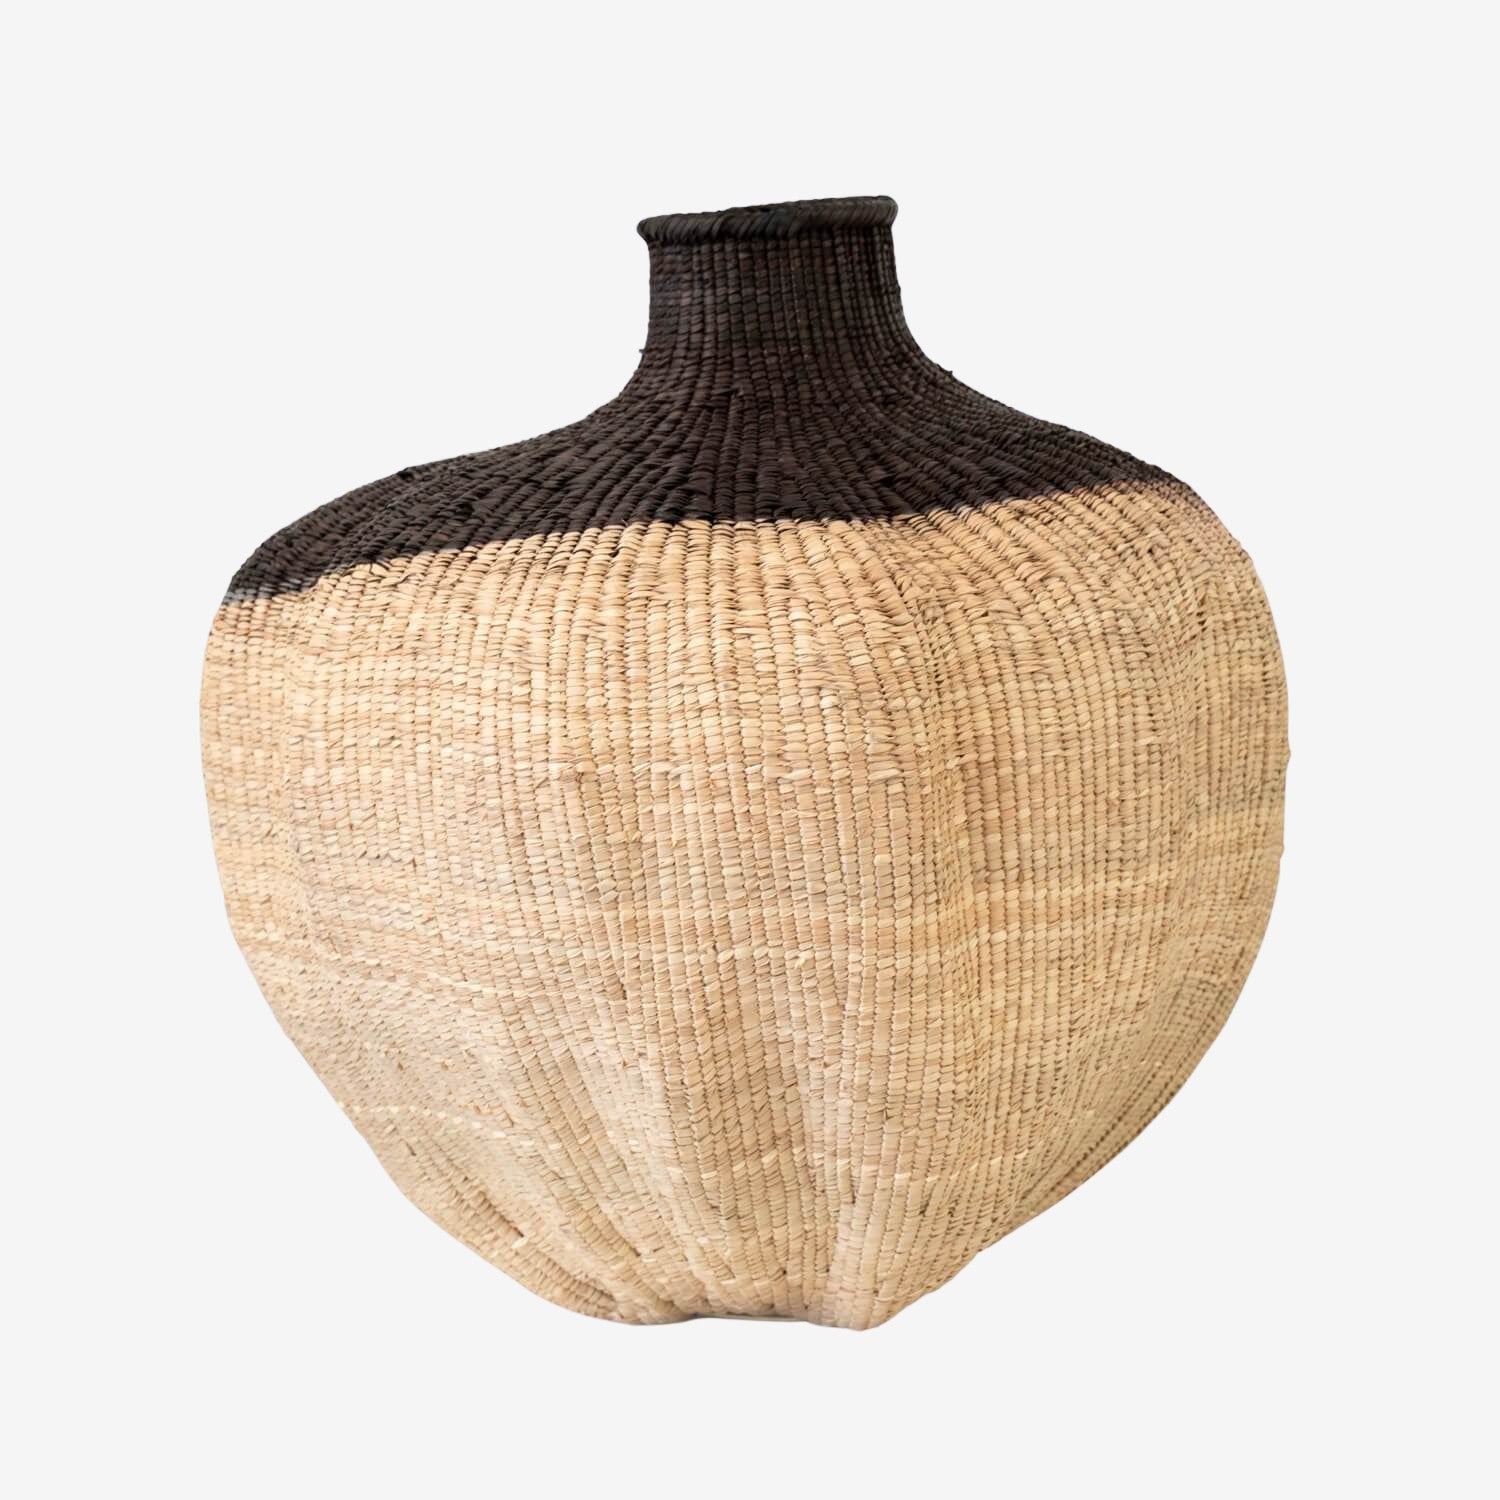 African Dipped Gourd Basket - Multi Sizes